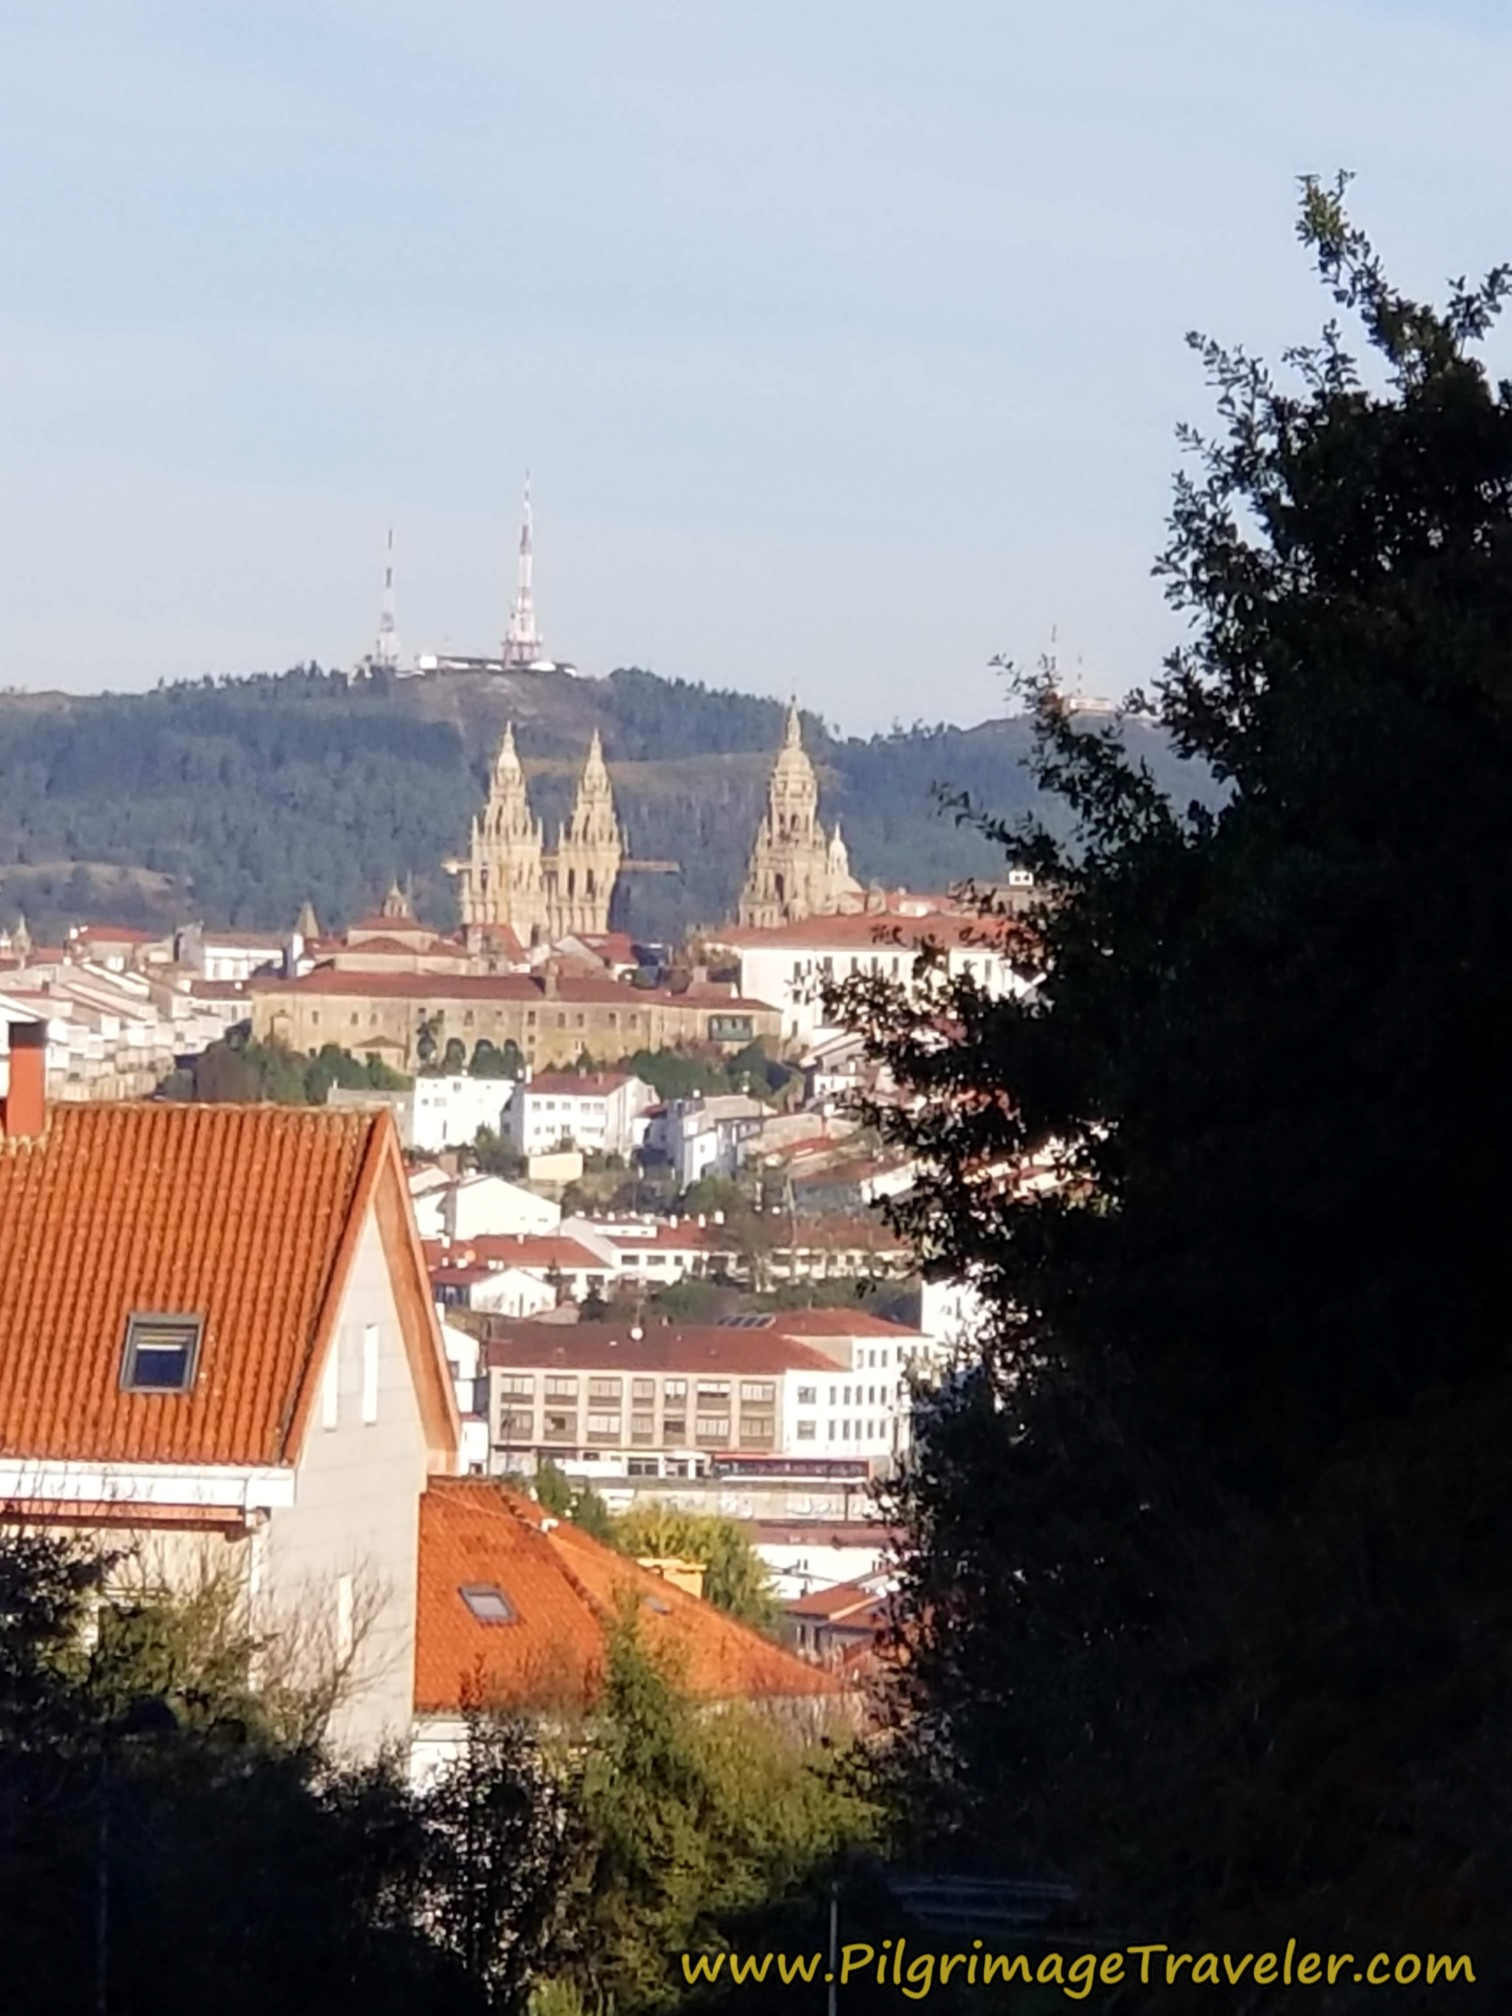 Closer View of the Santiago Cathedral Spires on the Camino Sanabrés from A Susana to Santiago de Compostela